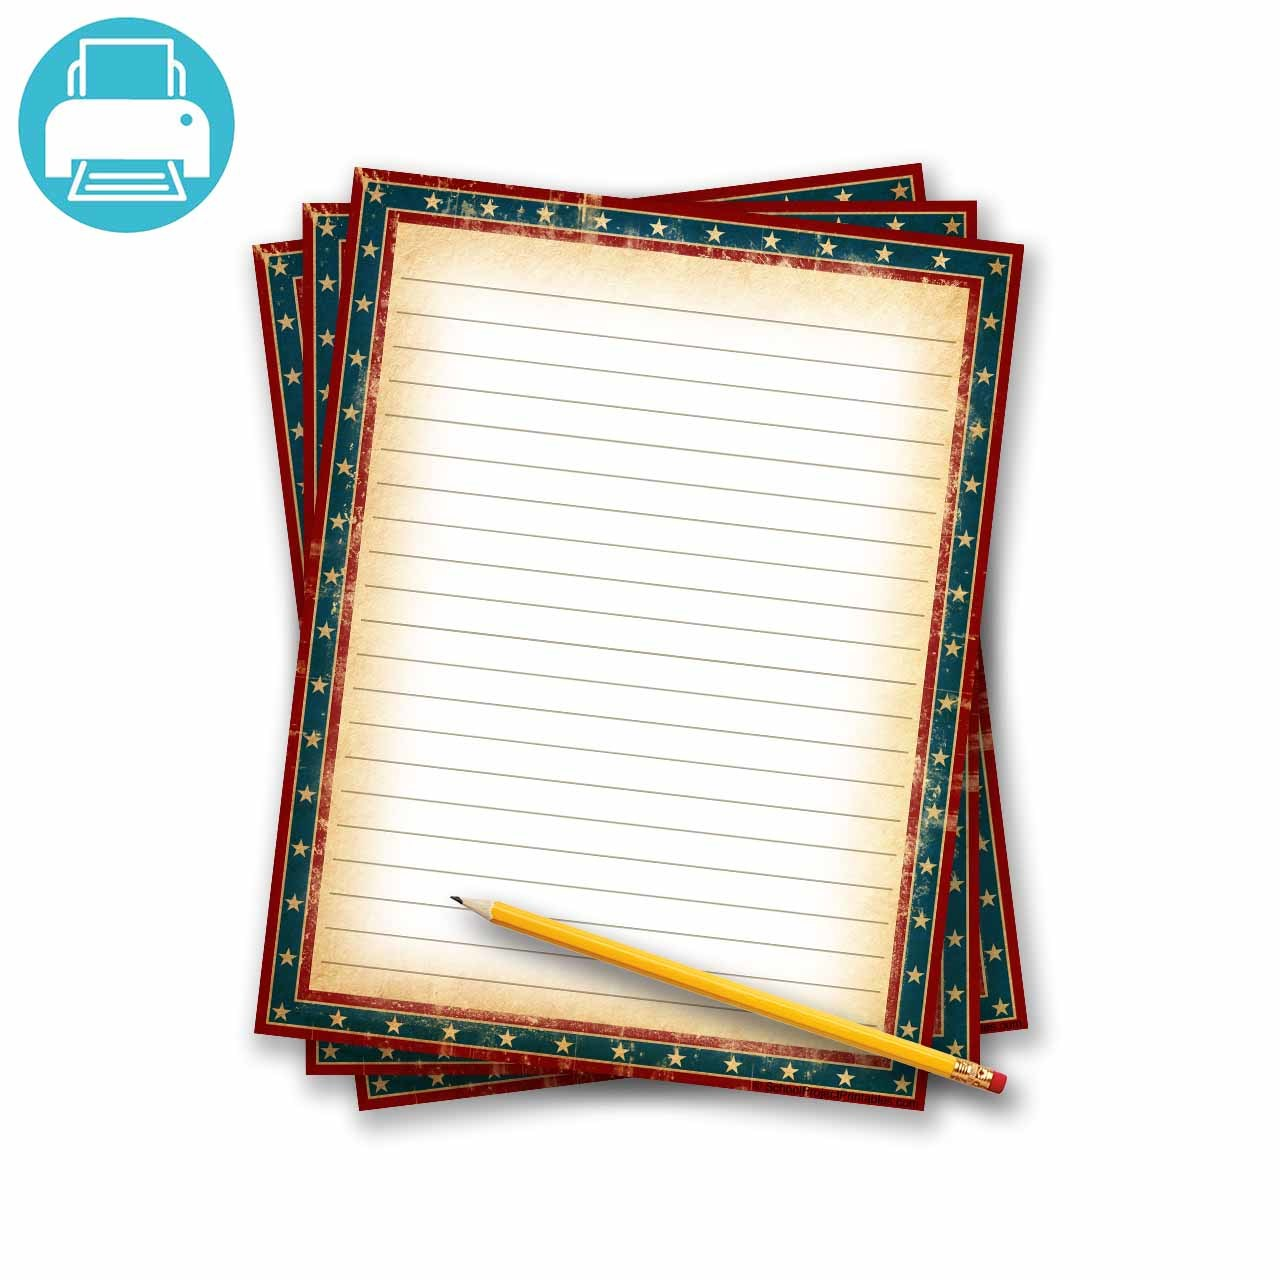 1280x1280 Border Paper Template Printable Lines Paper Sign In Sheet